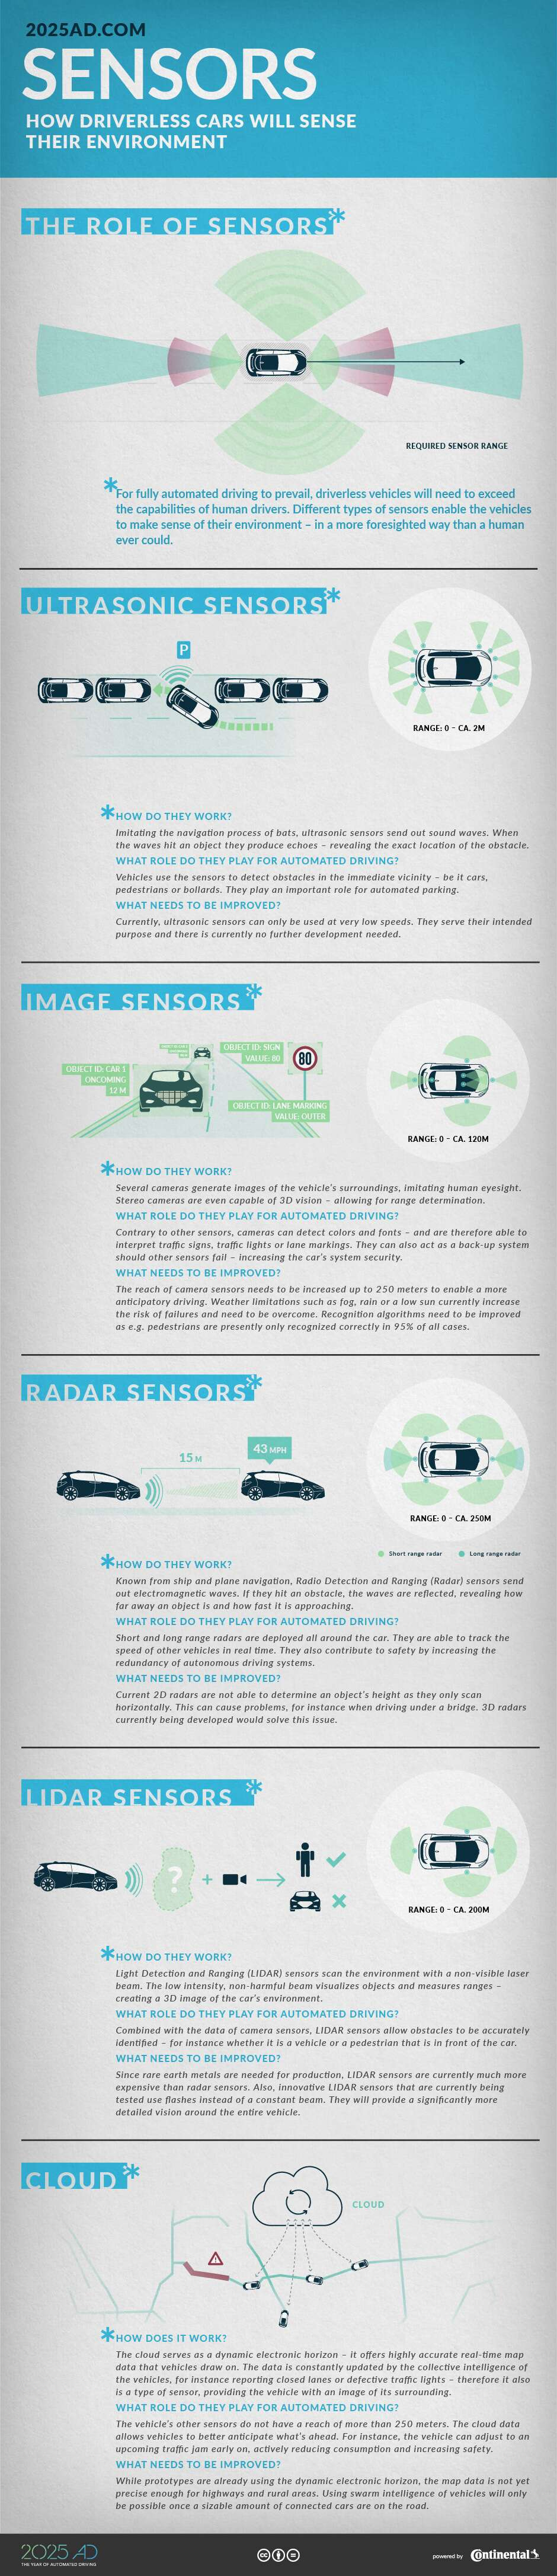 Heres How The Sensors In Autonomous Cars Work Drive Law Can Be Used To Troubleshoot Series Circuits Automotive Purposes 2025ad